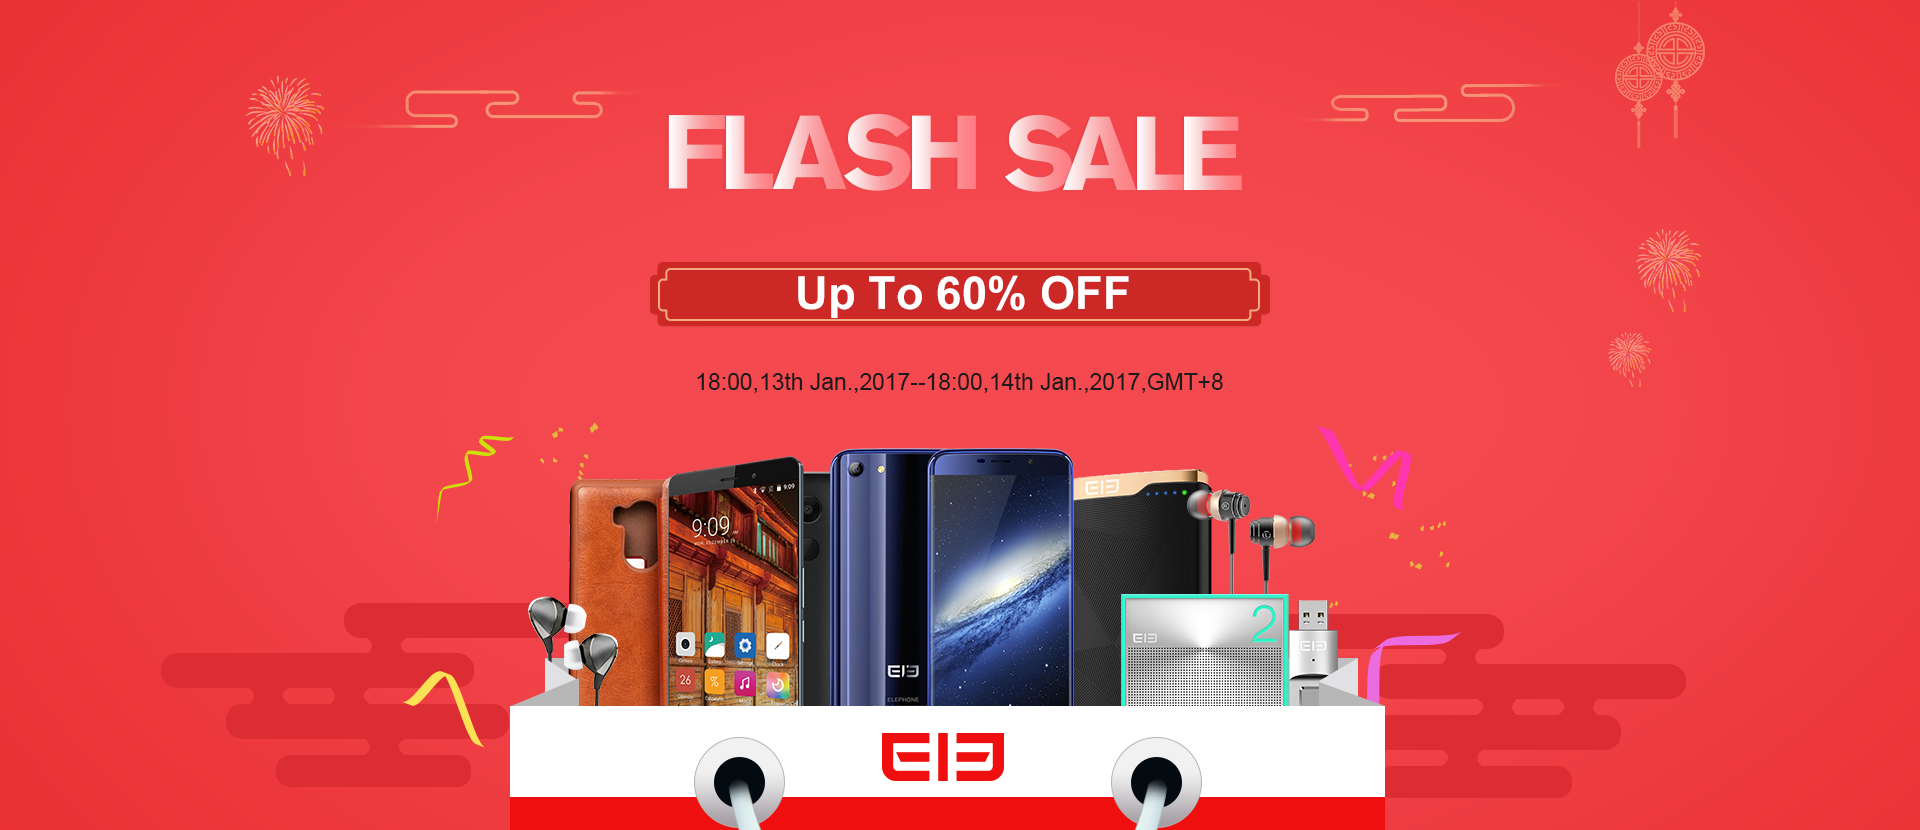 Elephone ThanksGiving Sale: elePhone products up for grabs at unbeatable offers and gifts